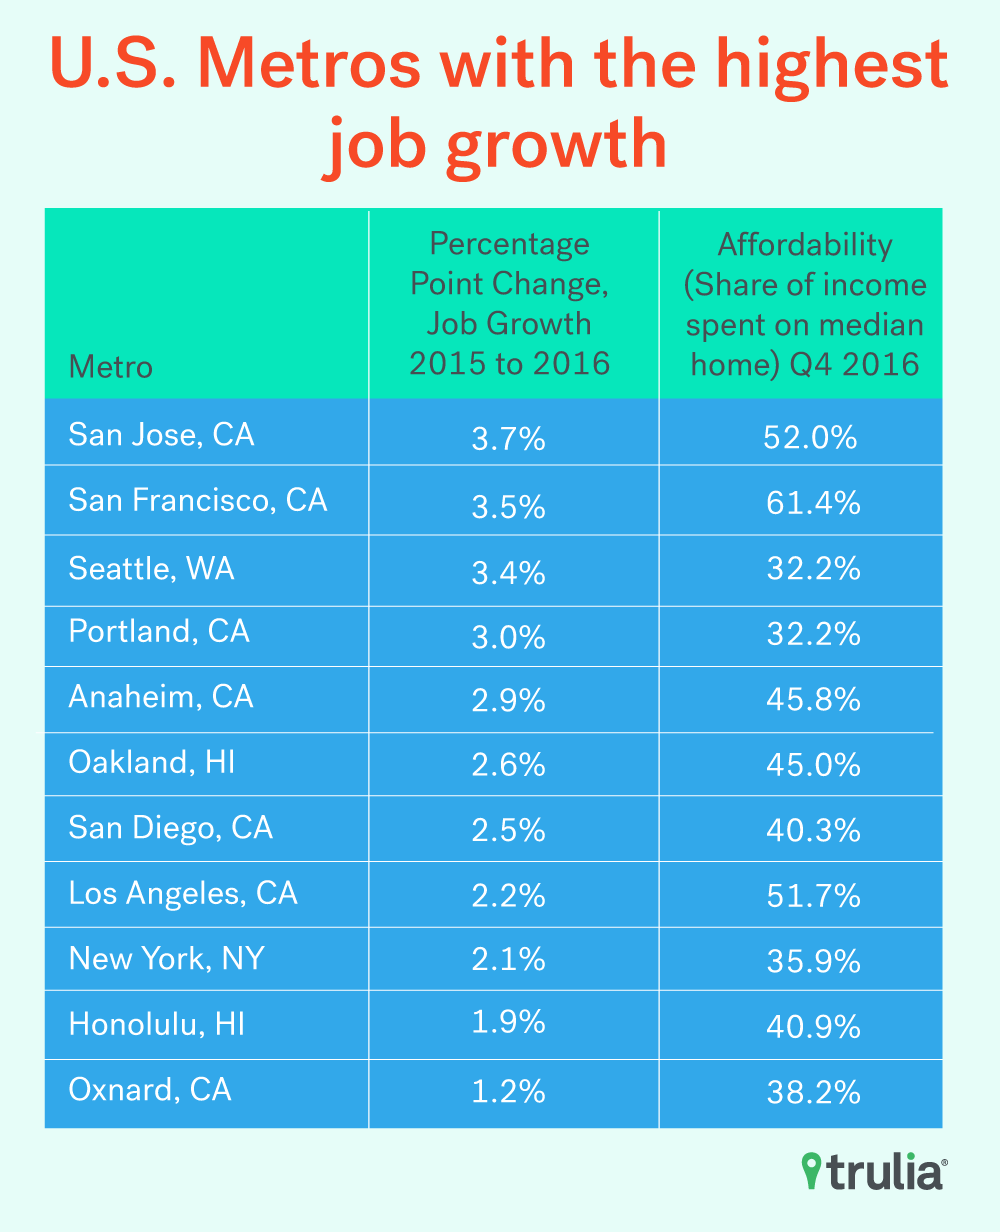 Amazing As A Result, Seattle Saw A 3.4% Increase In Job Growth From 2015